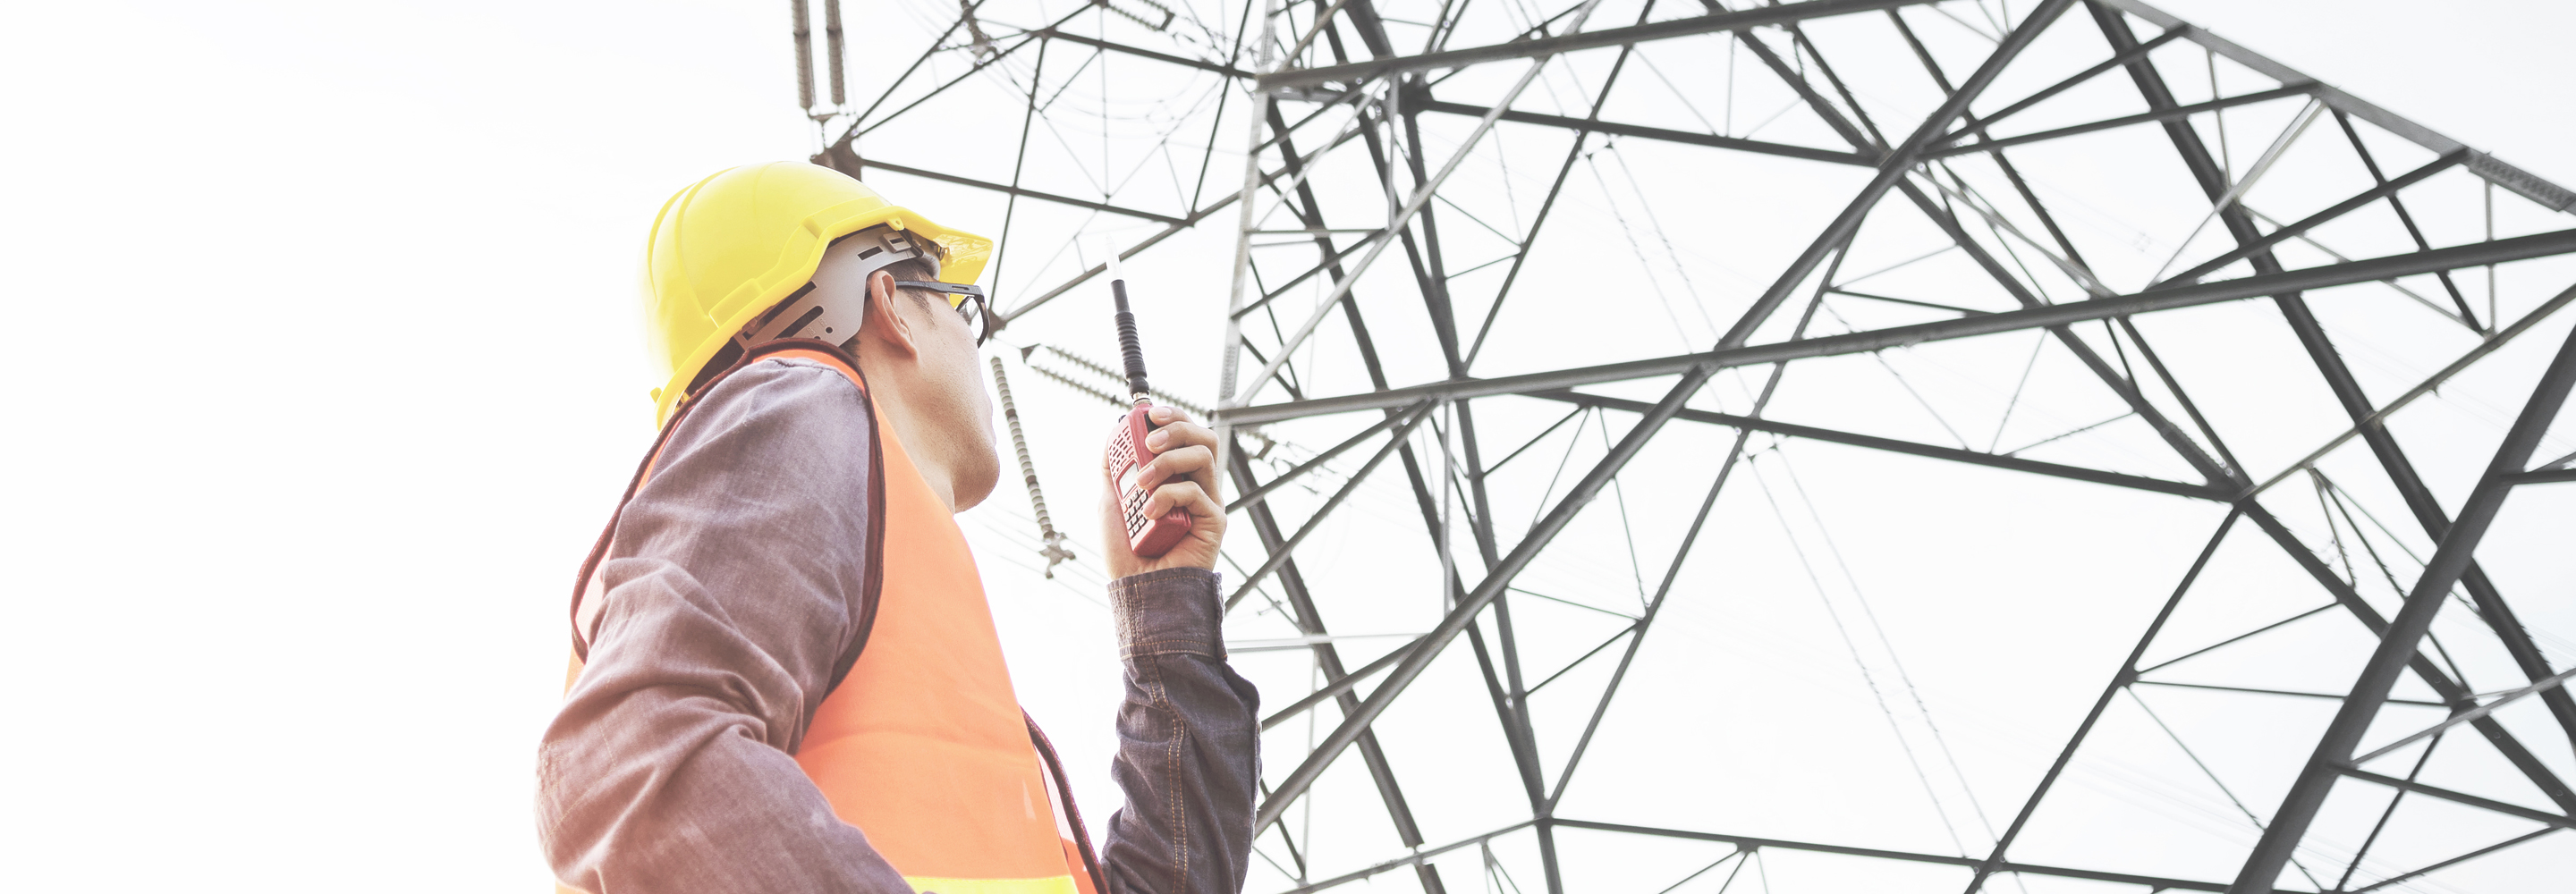 man with hard hat looking up at transmission tower